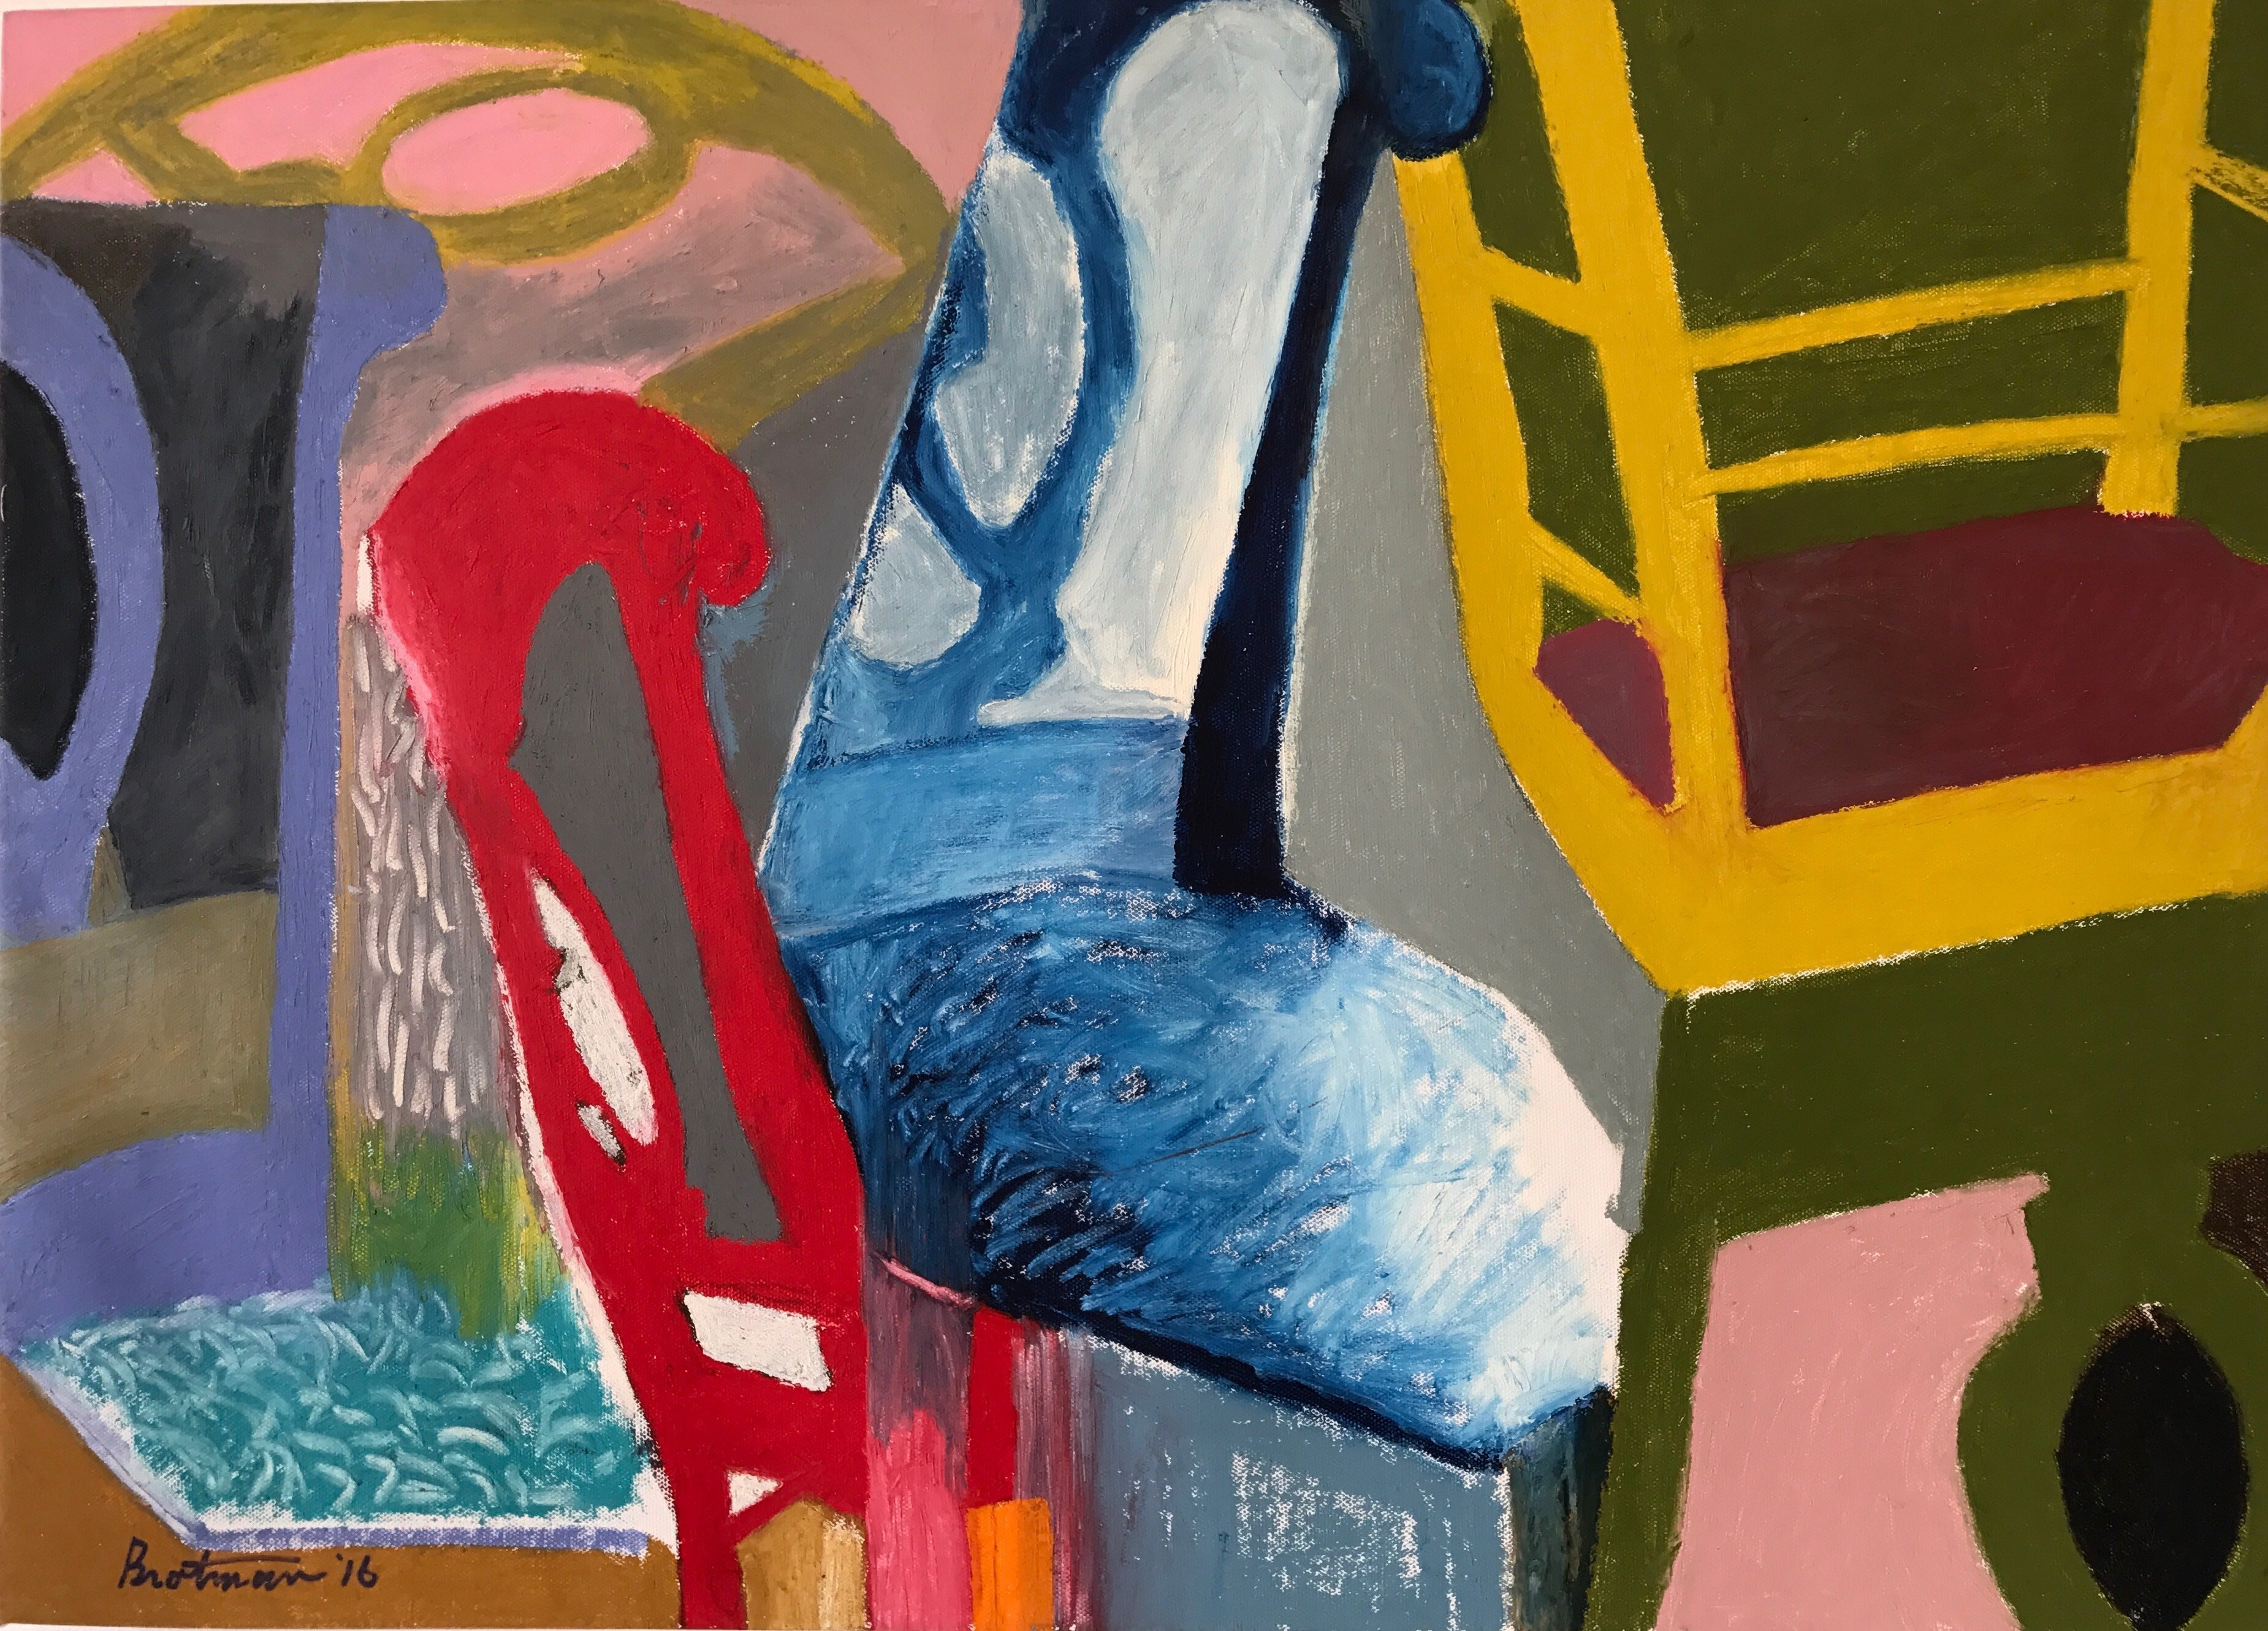 Howard Brotman; Russian Roulette, 2016, Original Painting Oil, 28 x 20 inches. Artwork description: 241 Russian Roulette - - Playing with positive and negative space, the chair acts as the vehicle in this piece.  The basic colors of blue, red and yellow contrast against the action and movement of the forms.  Note, in the room simulation image the ratio of the art to the ...